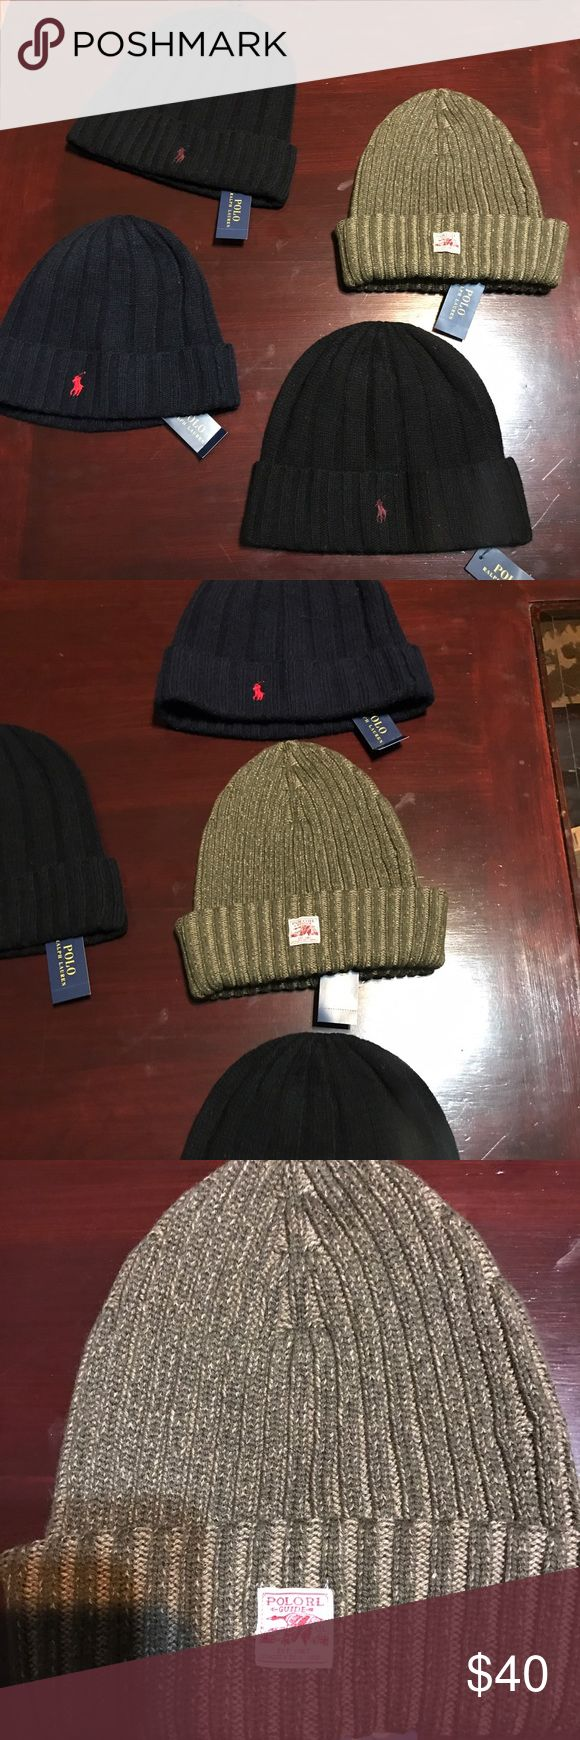 Men's winter hats Polo  hats its that time again yes winter is here and it's time too get fly and stay warm at same time two black polo winter hats 1 Blue and one RRL green is 75 check this out bundle them up accept the RRL. But with the polo hoody for 100 or by one by one anyway it's another good find Ralph Lauren RRL Accessories Hats